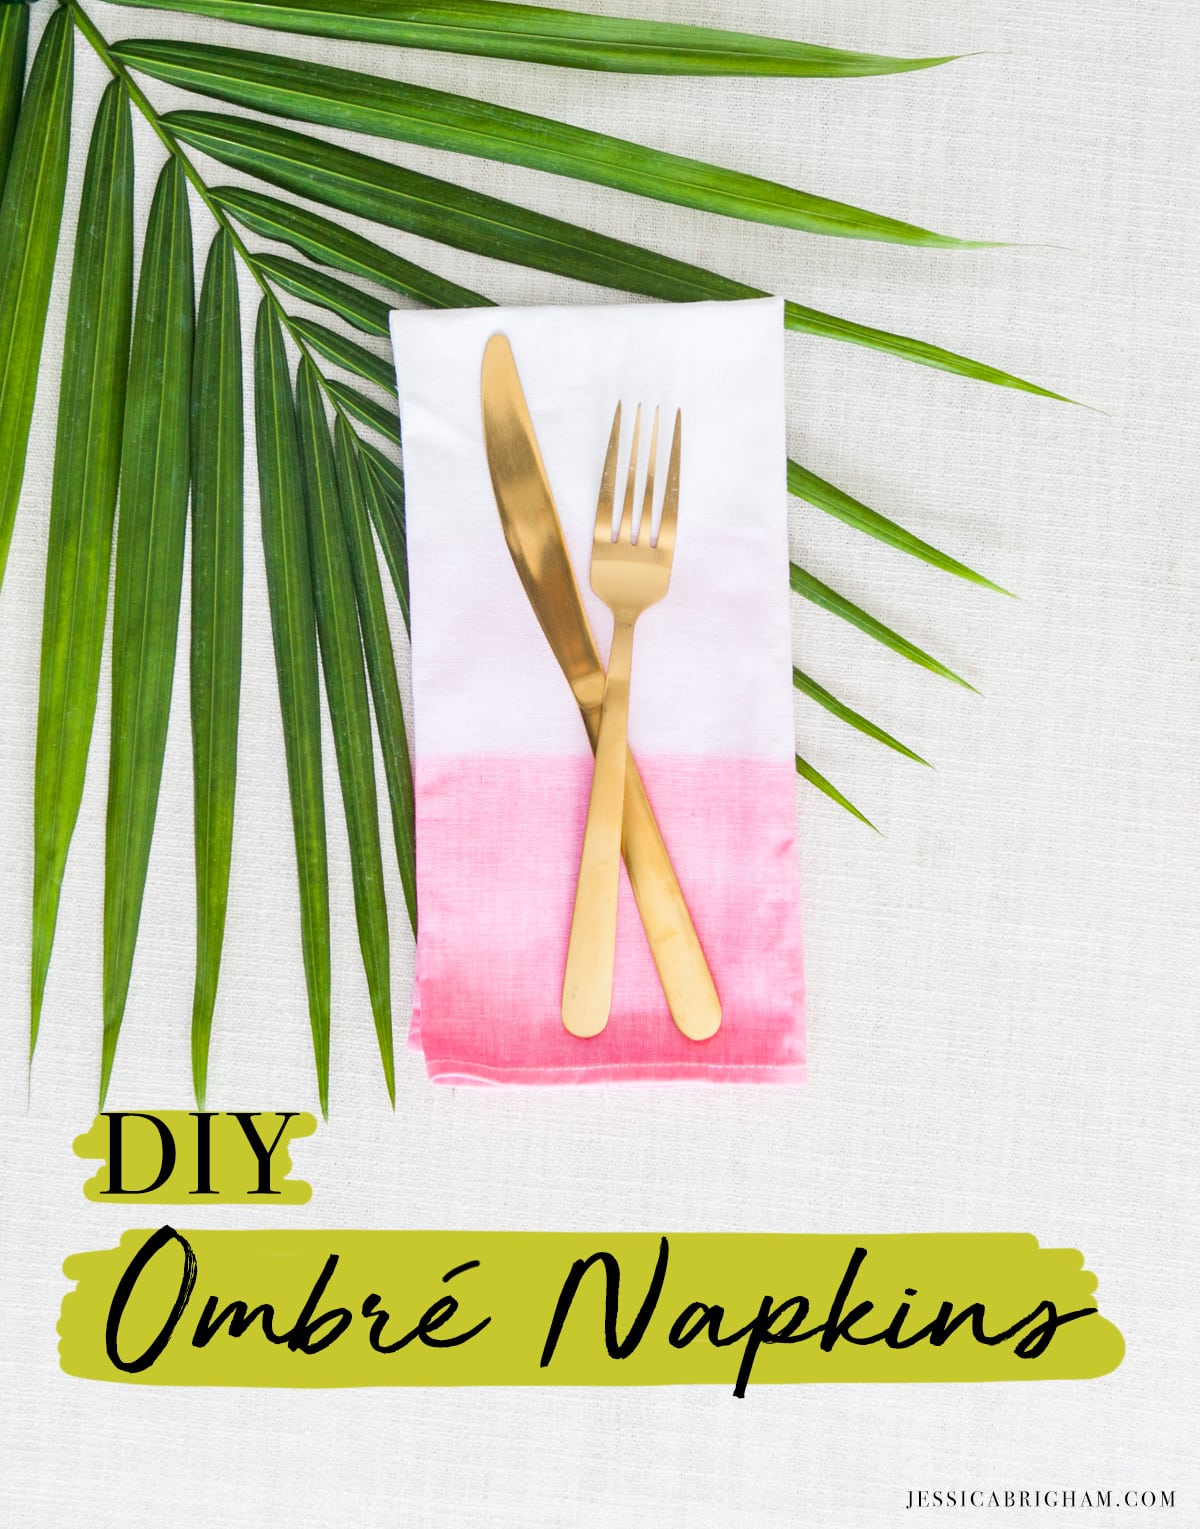 DIY Ombre Napkins | Party Decoration Ideas | Cinco de Mayo Party Supplies | Jessica Brigham | Magazine Ready for Life